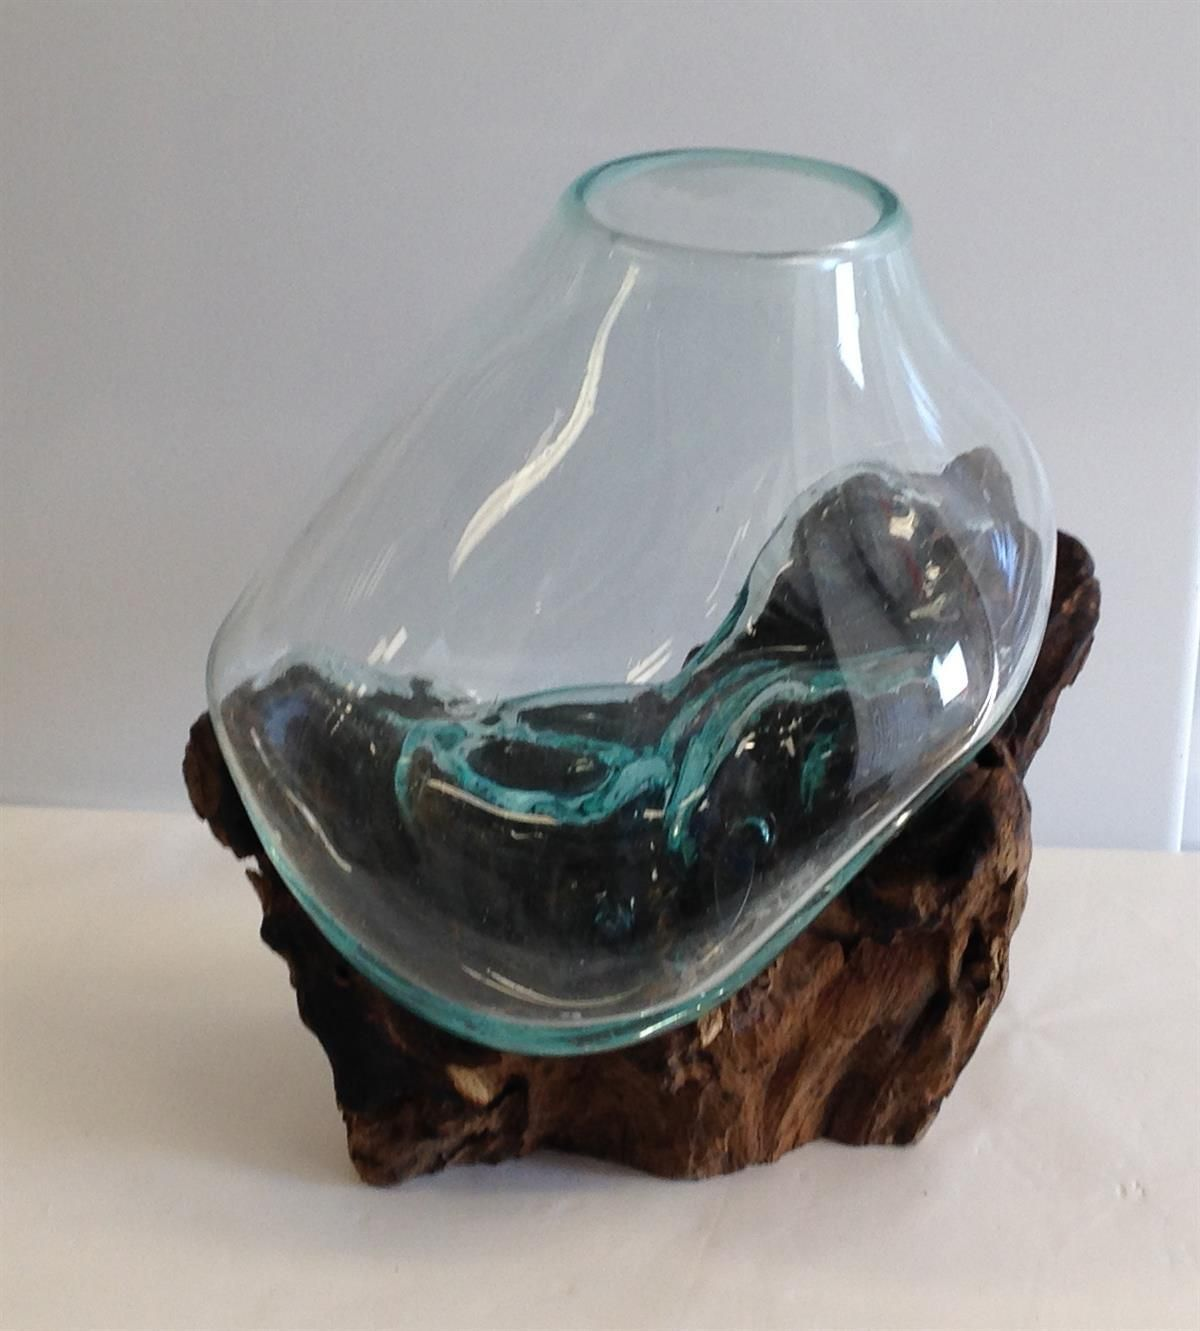 Hand blown molten glass and wood root sculptured terrarium vase hand blown molten glass and teak wood sculptured terrarium vase fish bowl reviewsmspy